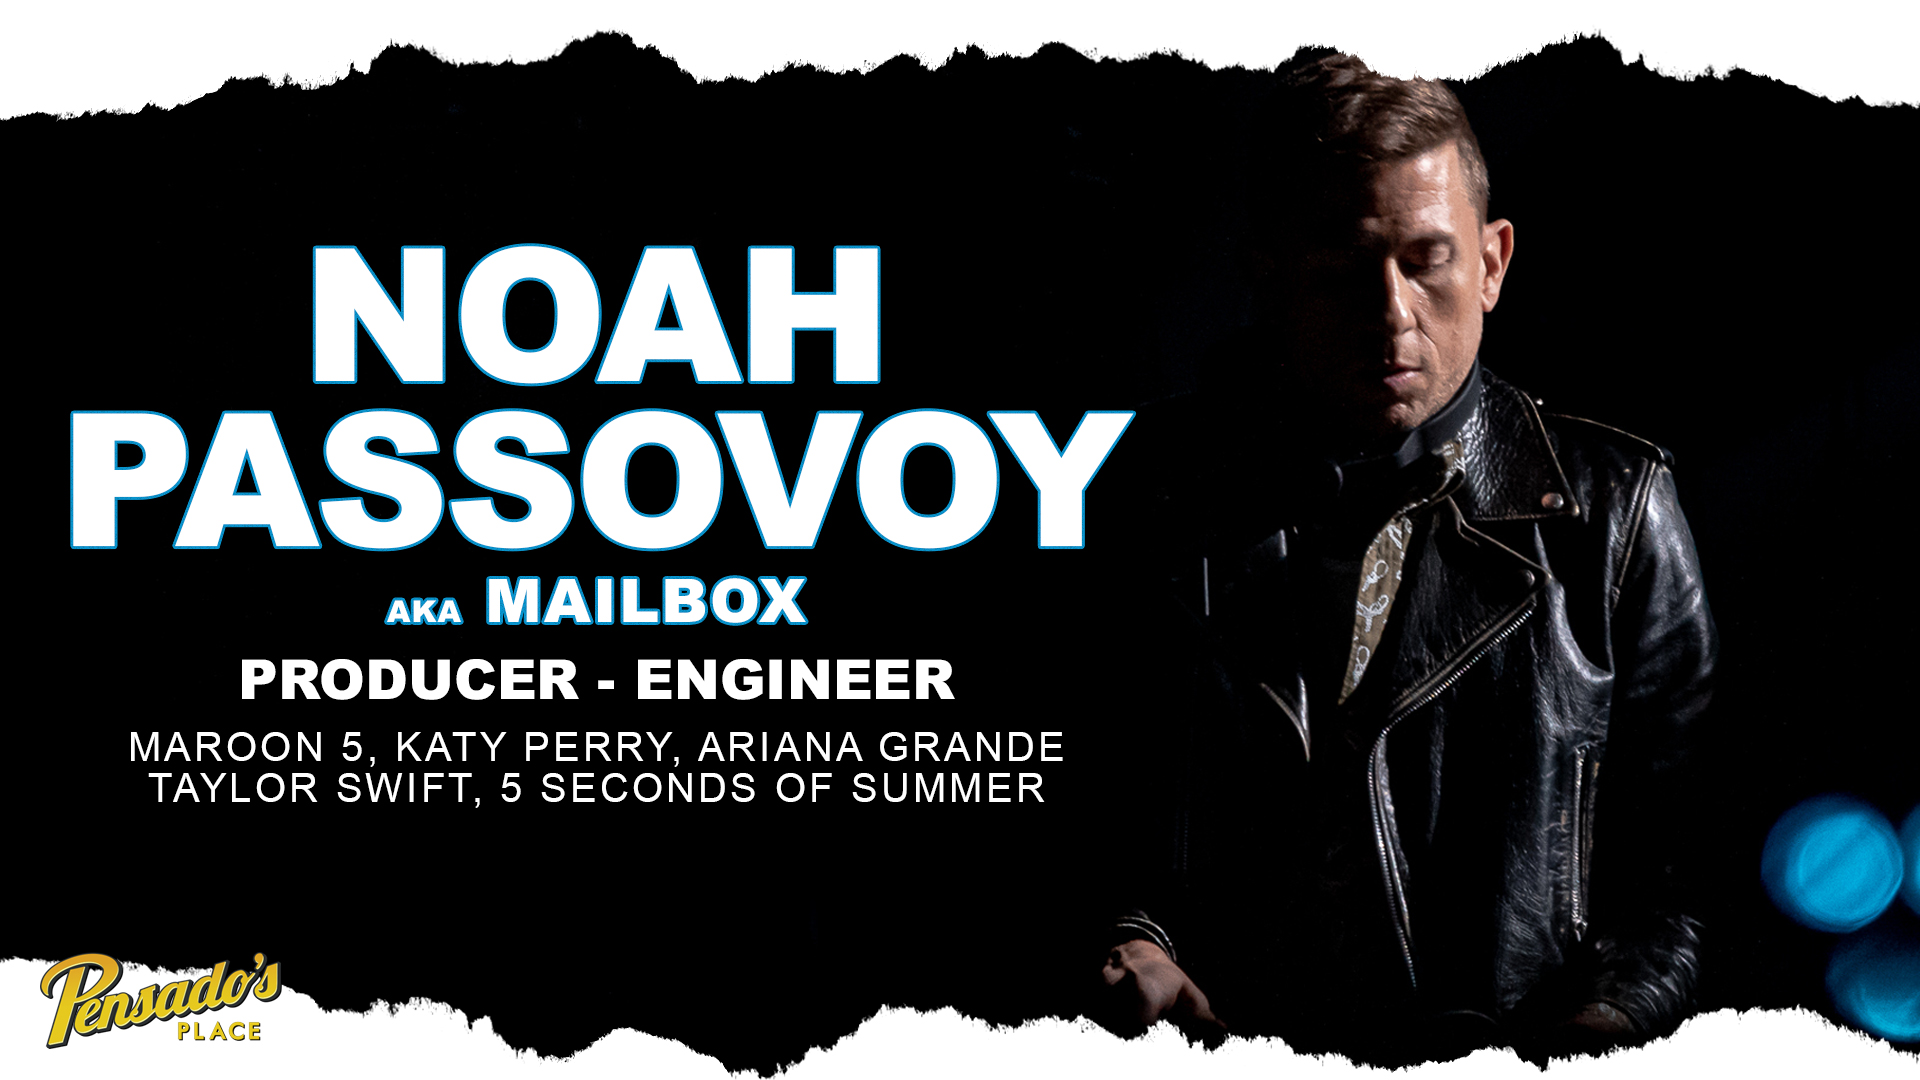 Maroon 5 Producer / Engineer, Noah Passovoy